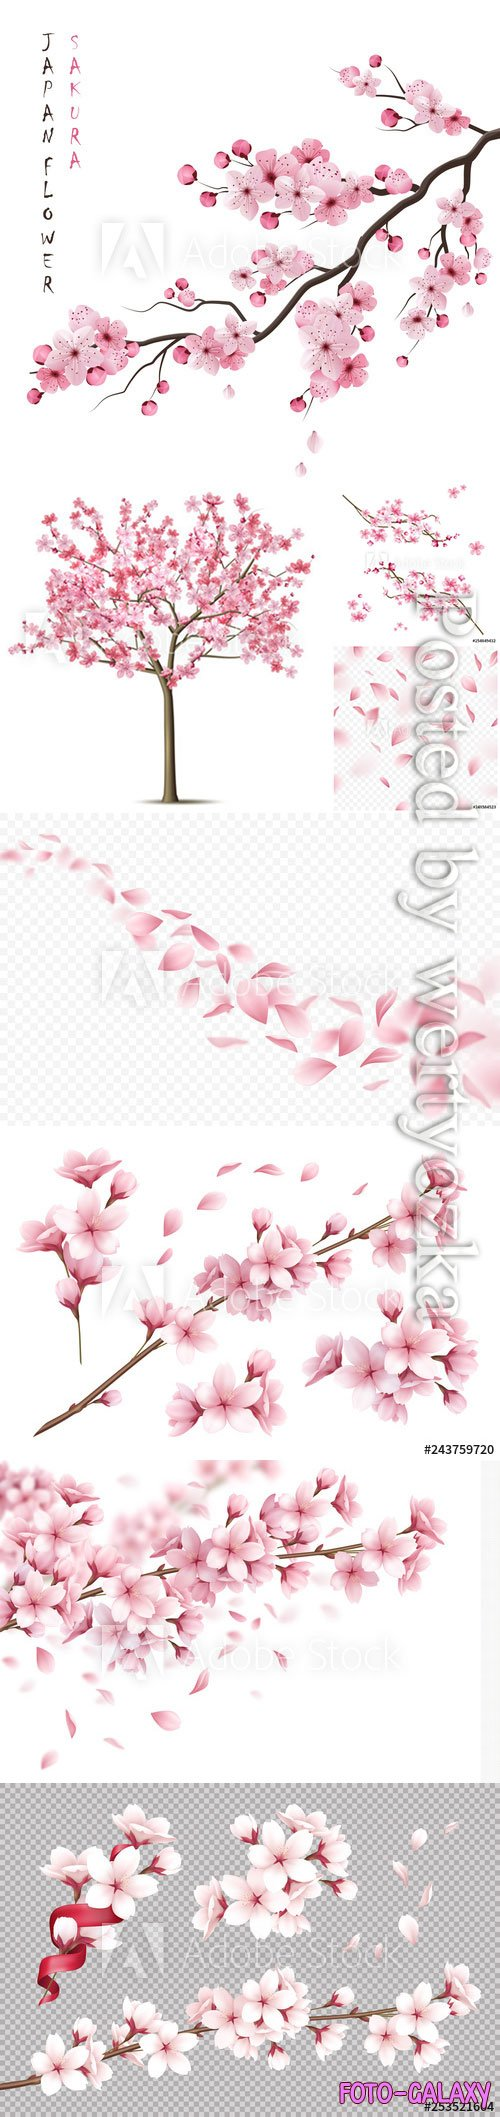 Cherry flowers background vector illustrations